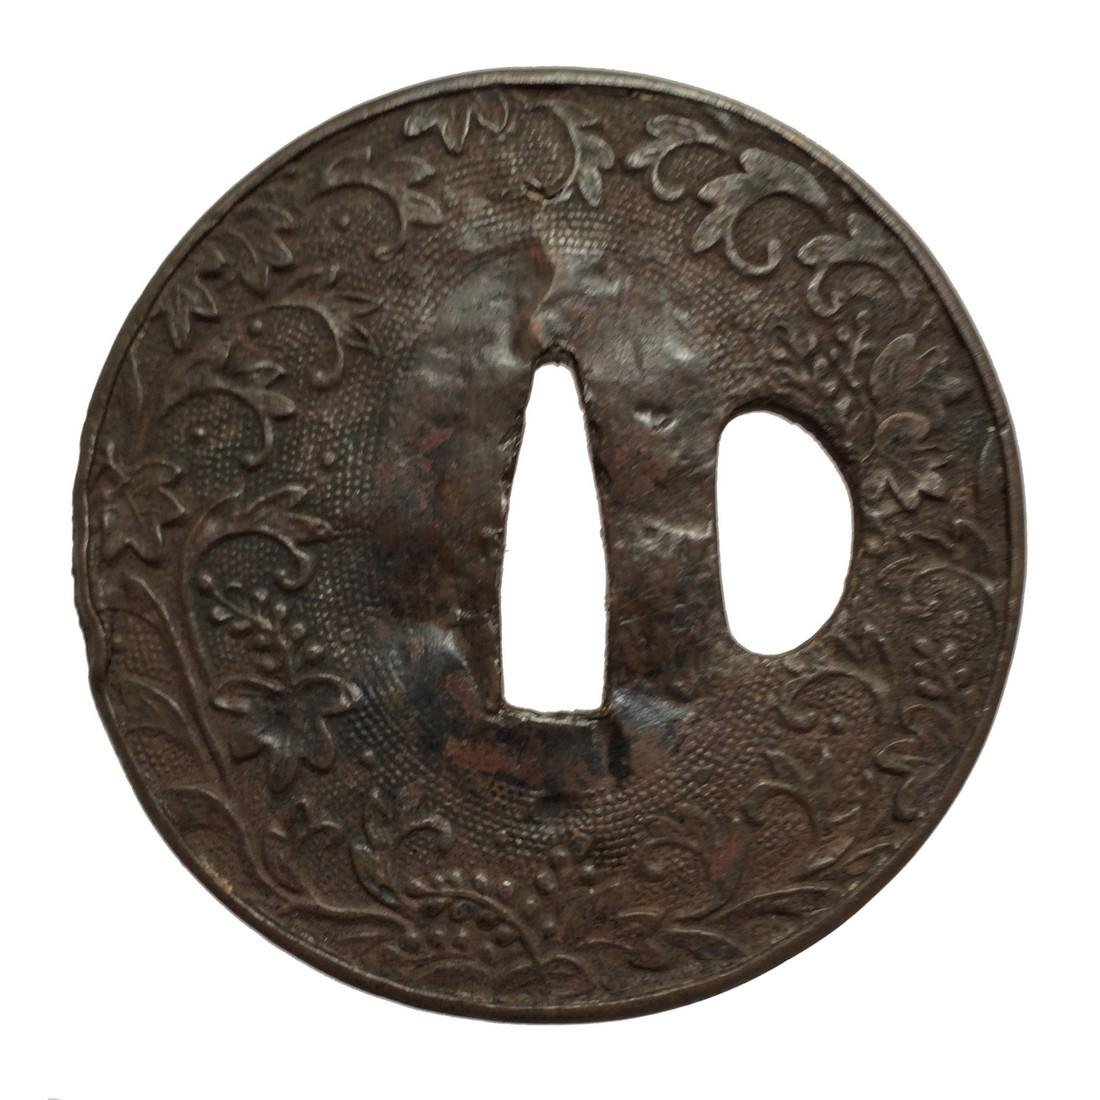 Repousse iron tsuba with floral design - 2